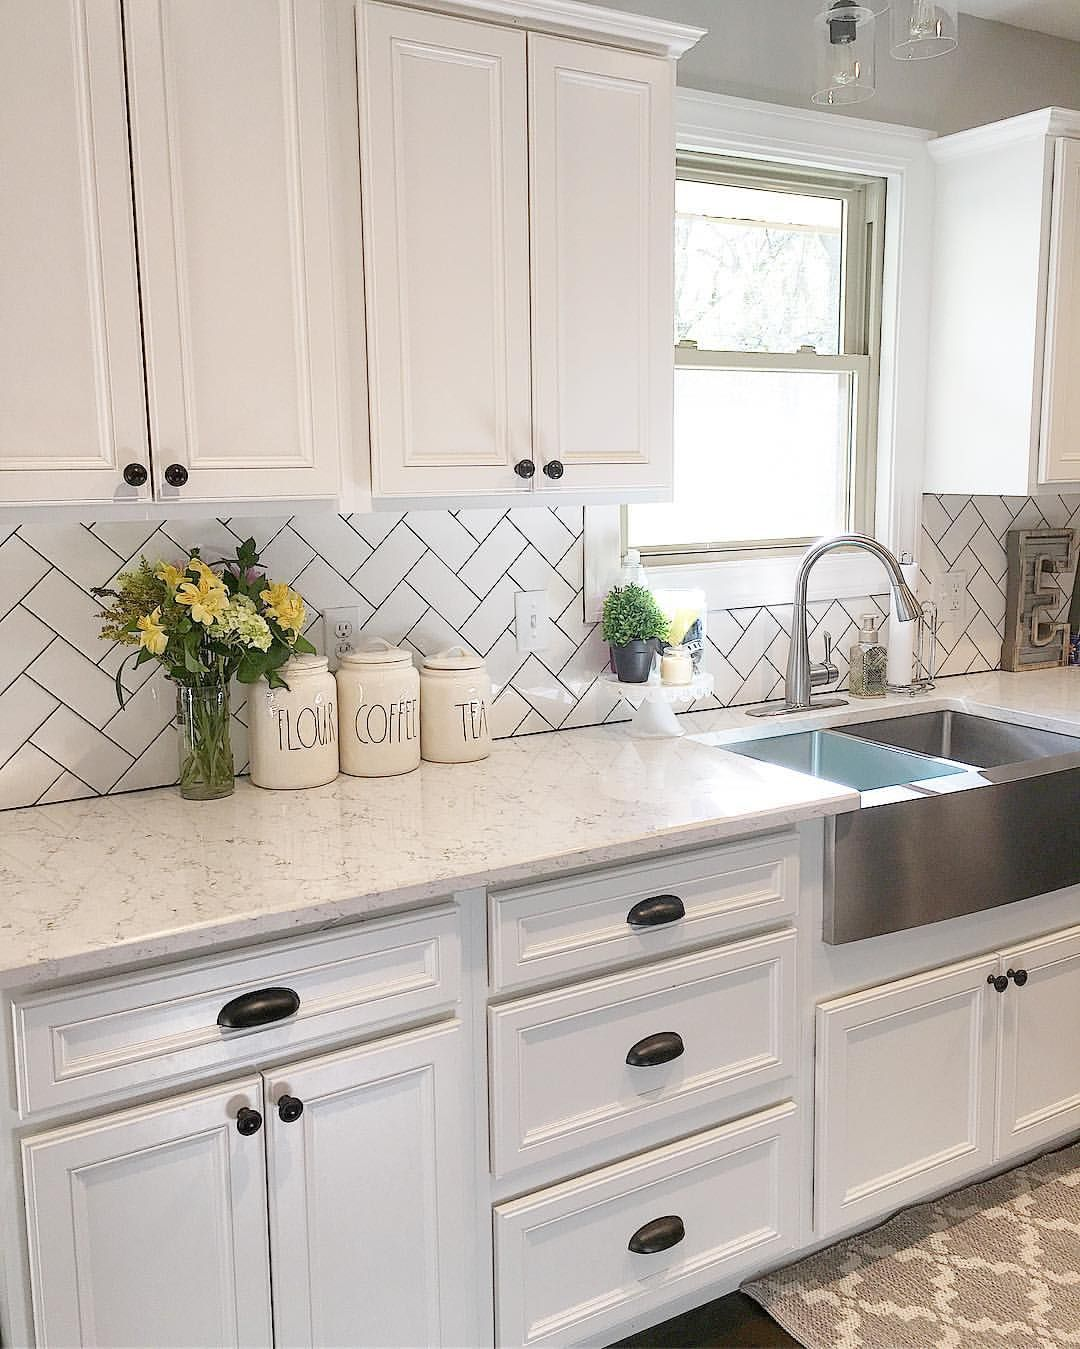 White Kitchen Cabinet Hardware: White Kitchen, Kitchen Decor, Subway Tile, Herringbone